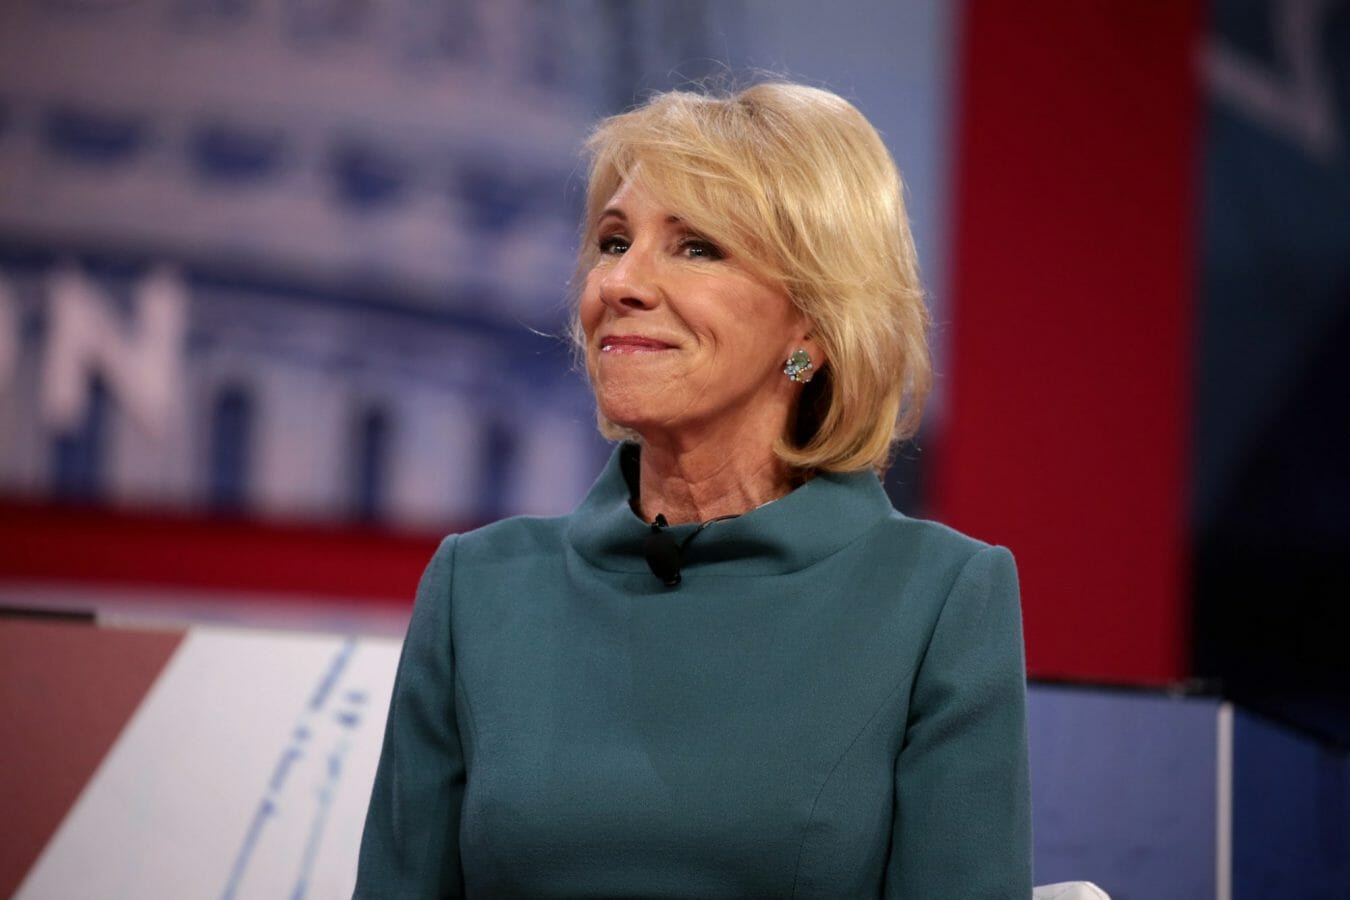 Betsy Devos' department recently renewed ACICS recognition for another year.